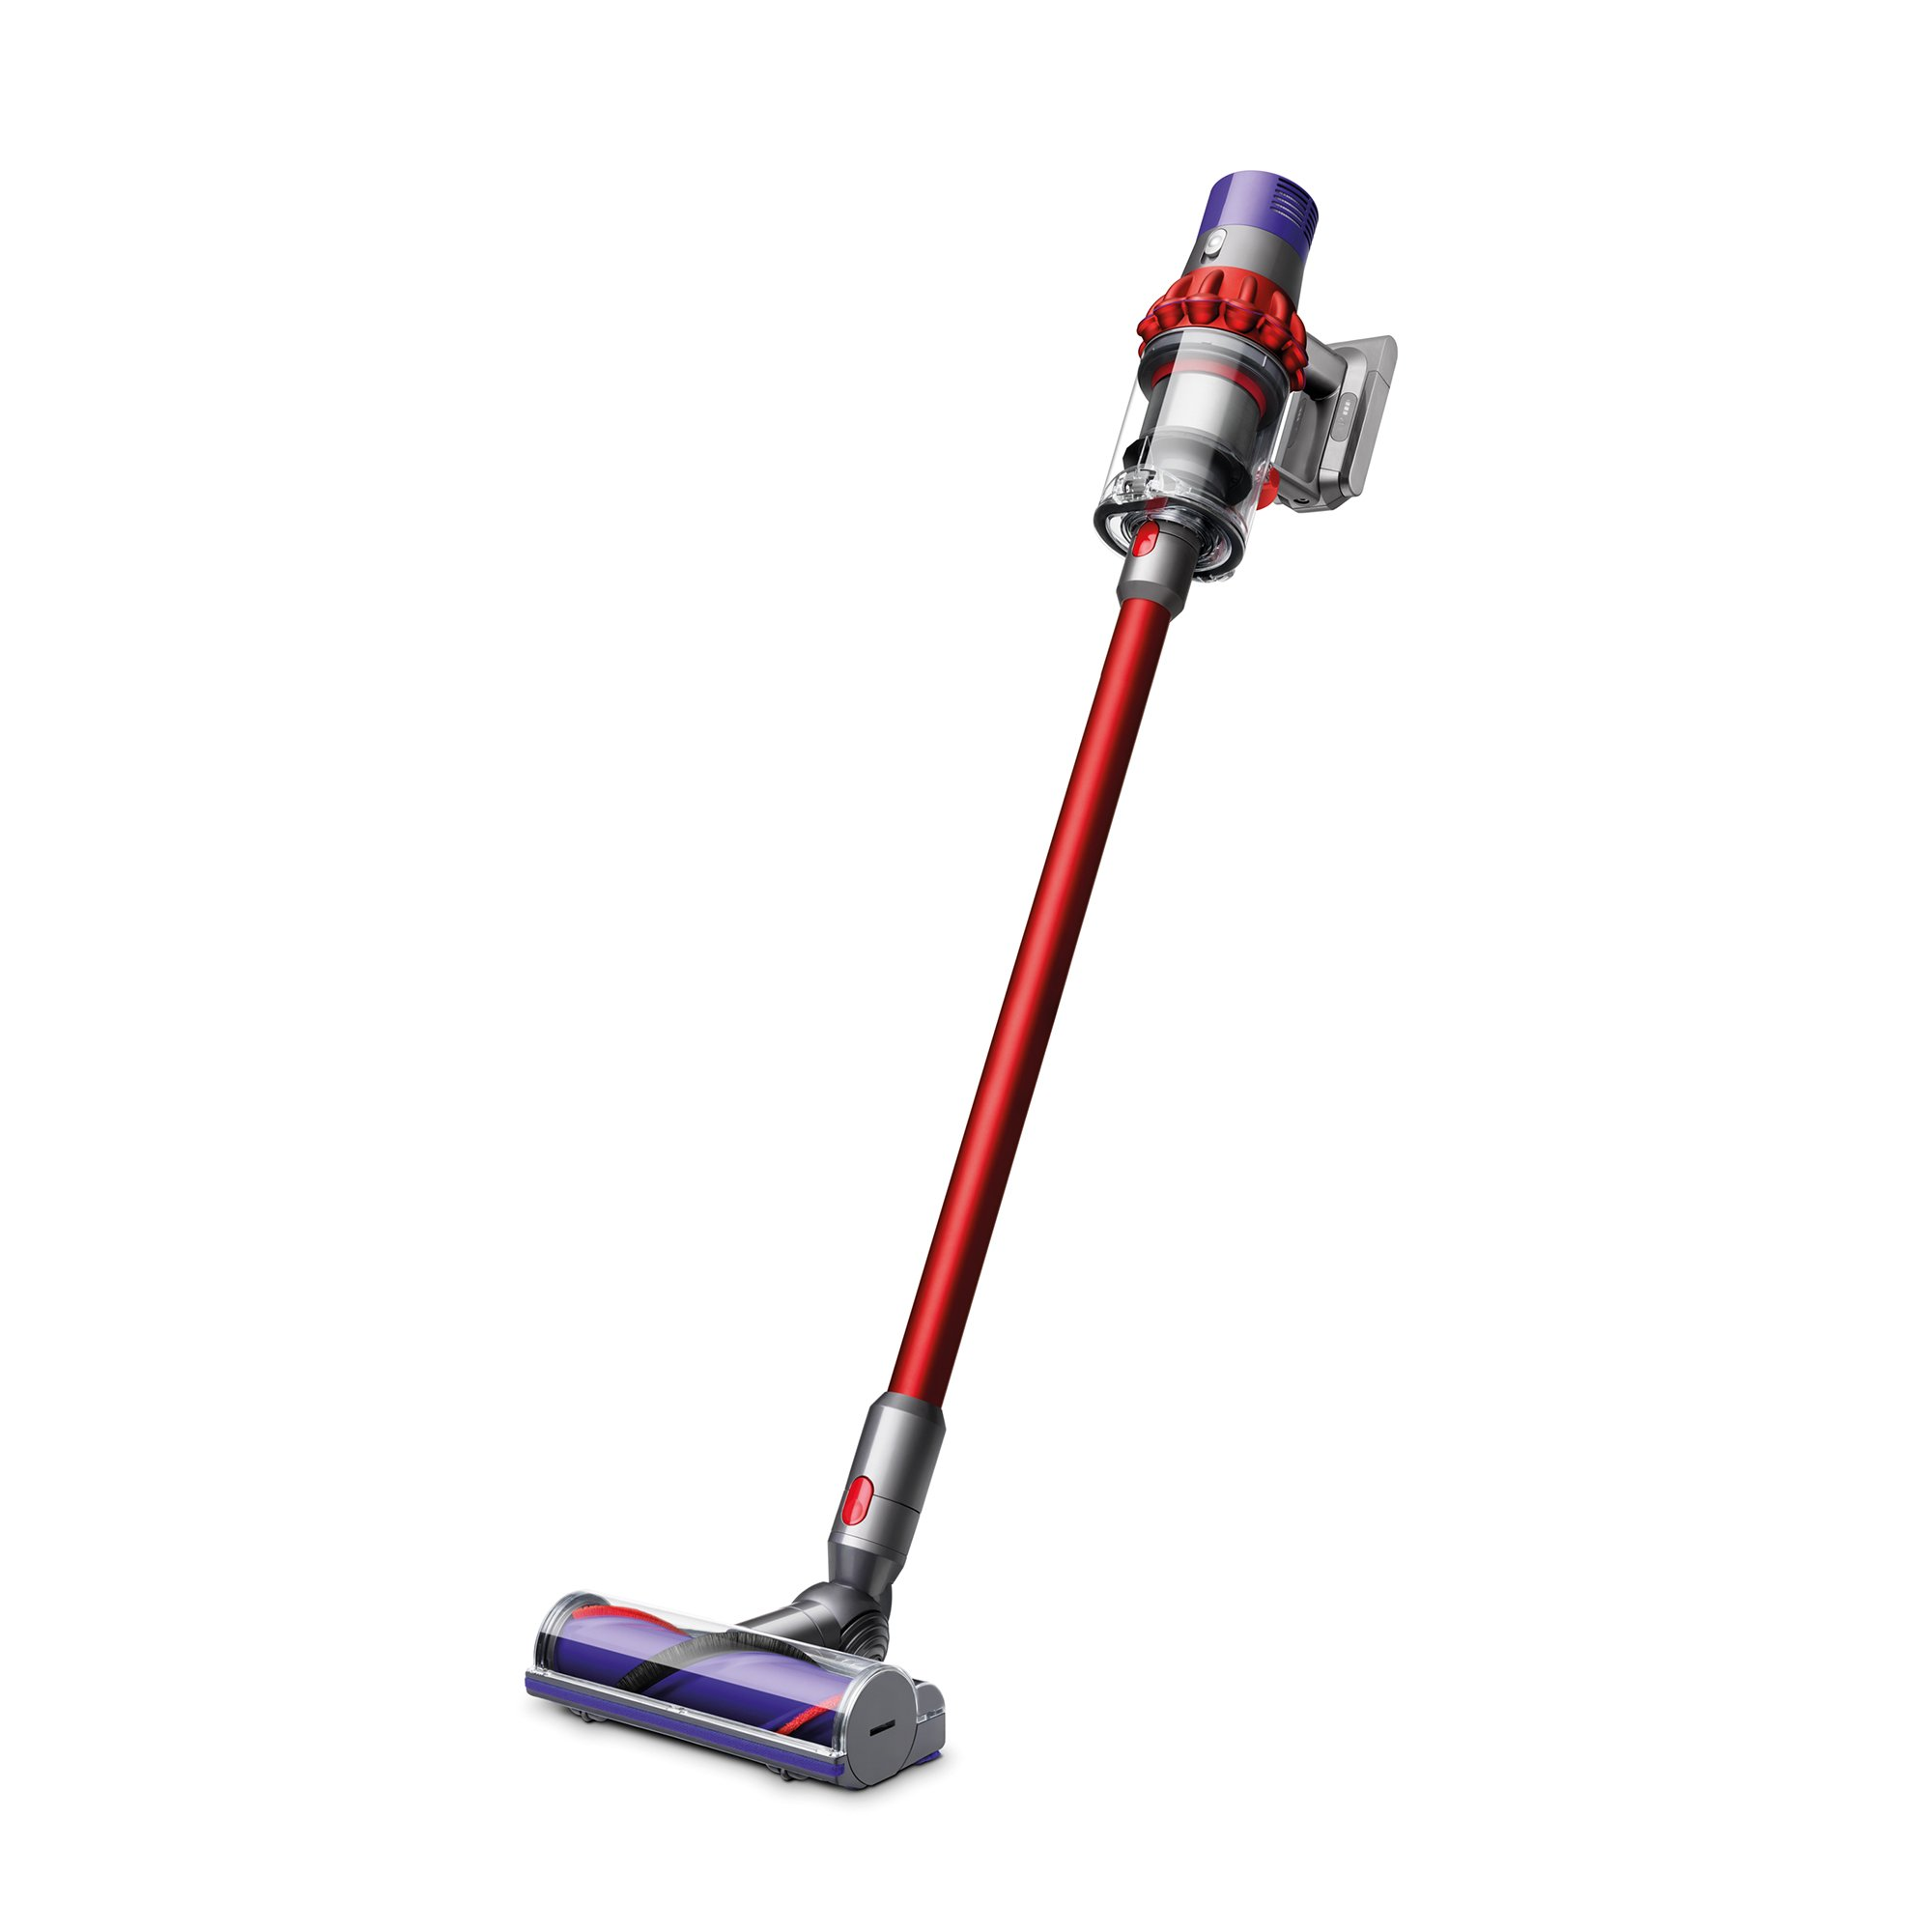 다이슨 V10 모터헤드 무선청소기 Dyson Cyclone V10 Motorhead Lightweight Cordless Stick Vacuum Cleaner